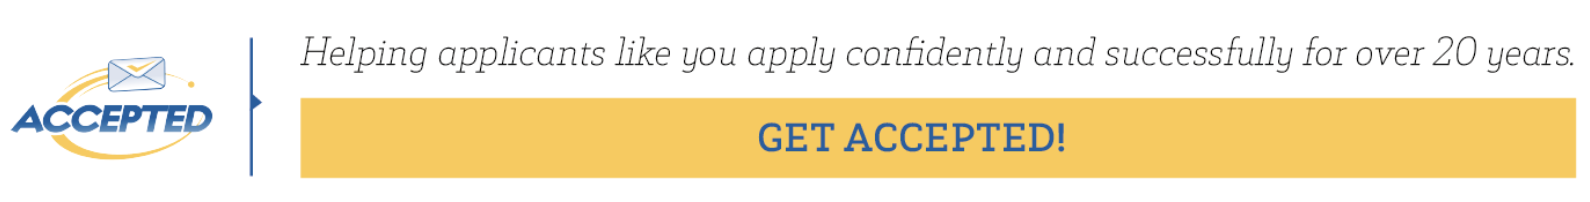 Accepted | Helping applicants like you apply confidently and successfully for over 20 years. <<Get Accepted!>>